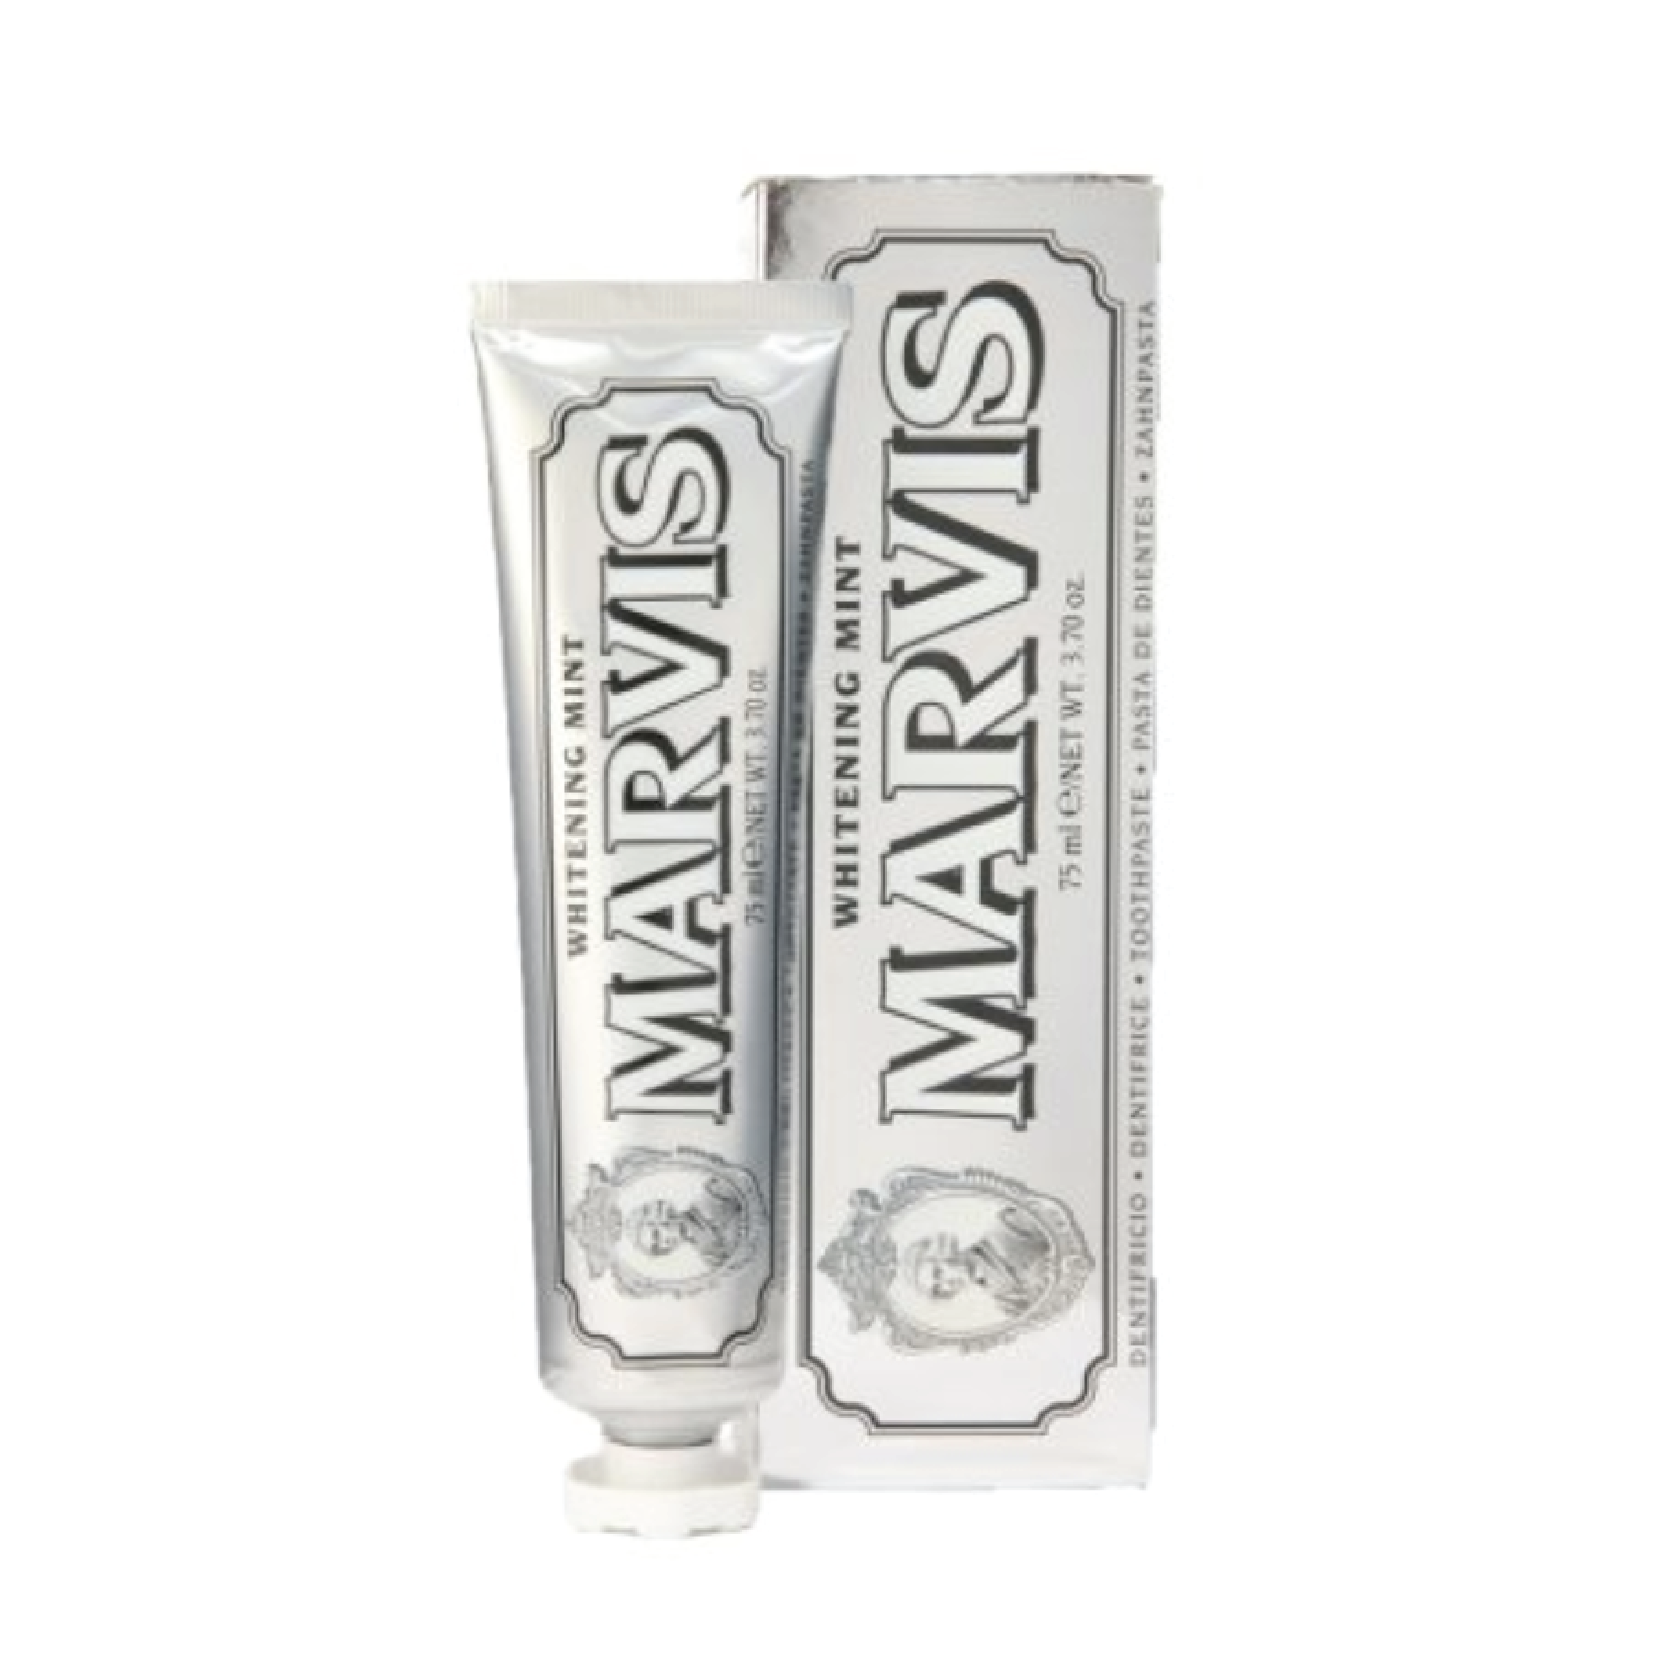 Marvis Whitening Toothpaste - $13.50 at DermstoreI love Marvis toothpaste. Their unique formulas and vintage packaging make them the perfect product to spice up a bathroom counter.